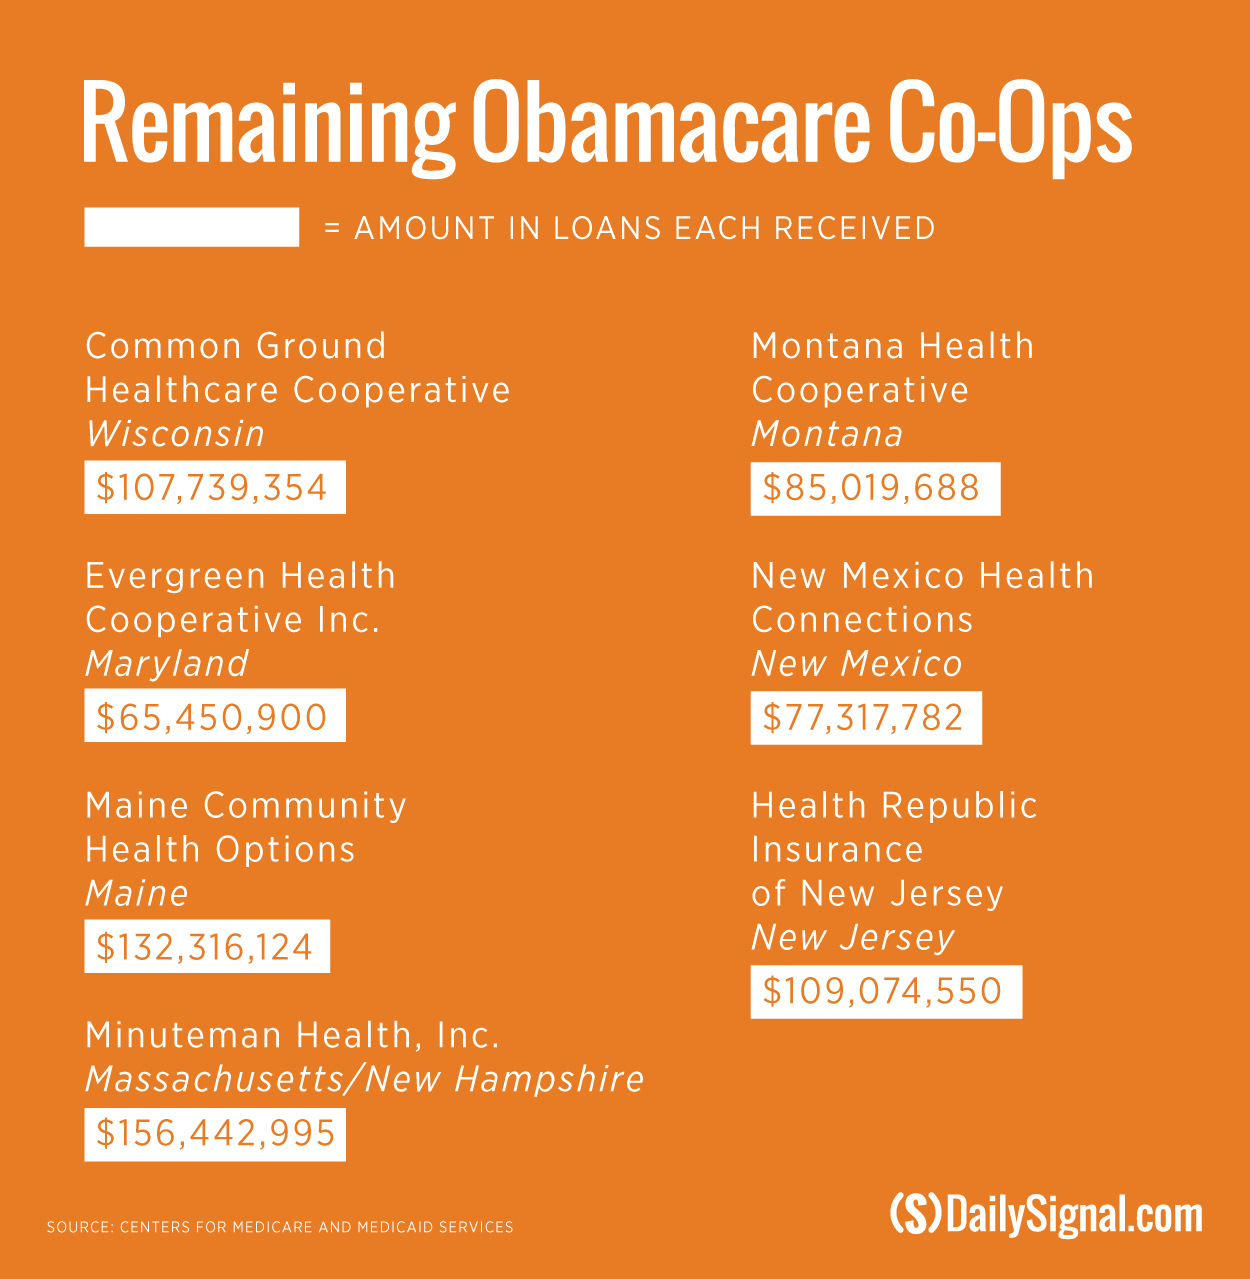 16 Obamacare Co-Ops Collapsed. Here's How the Rest Are Faring.